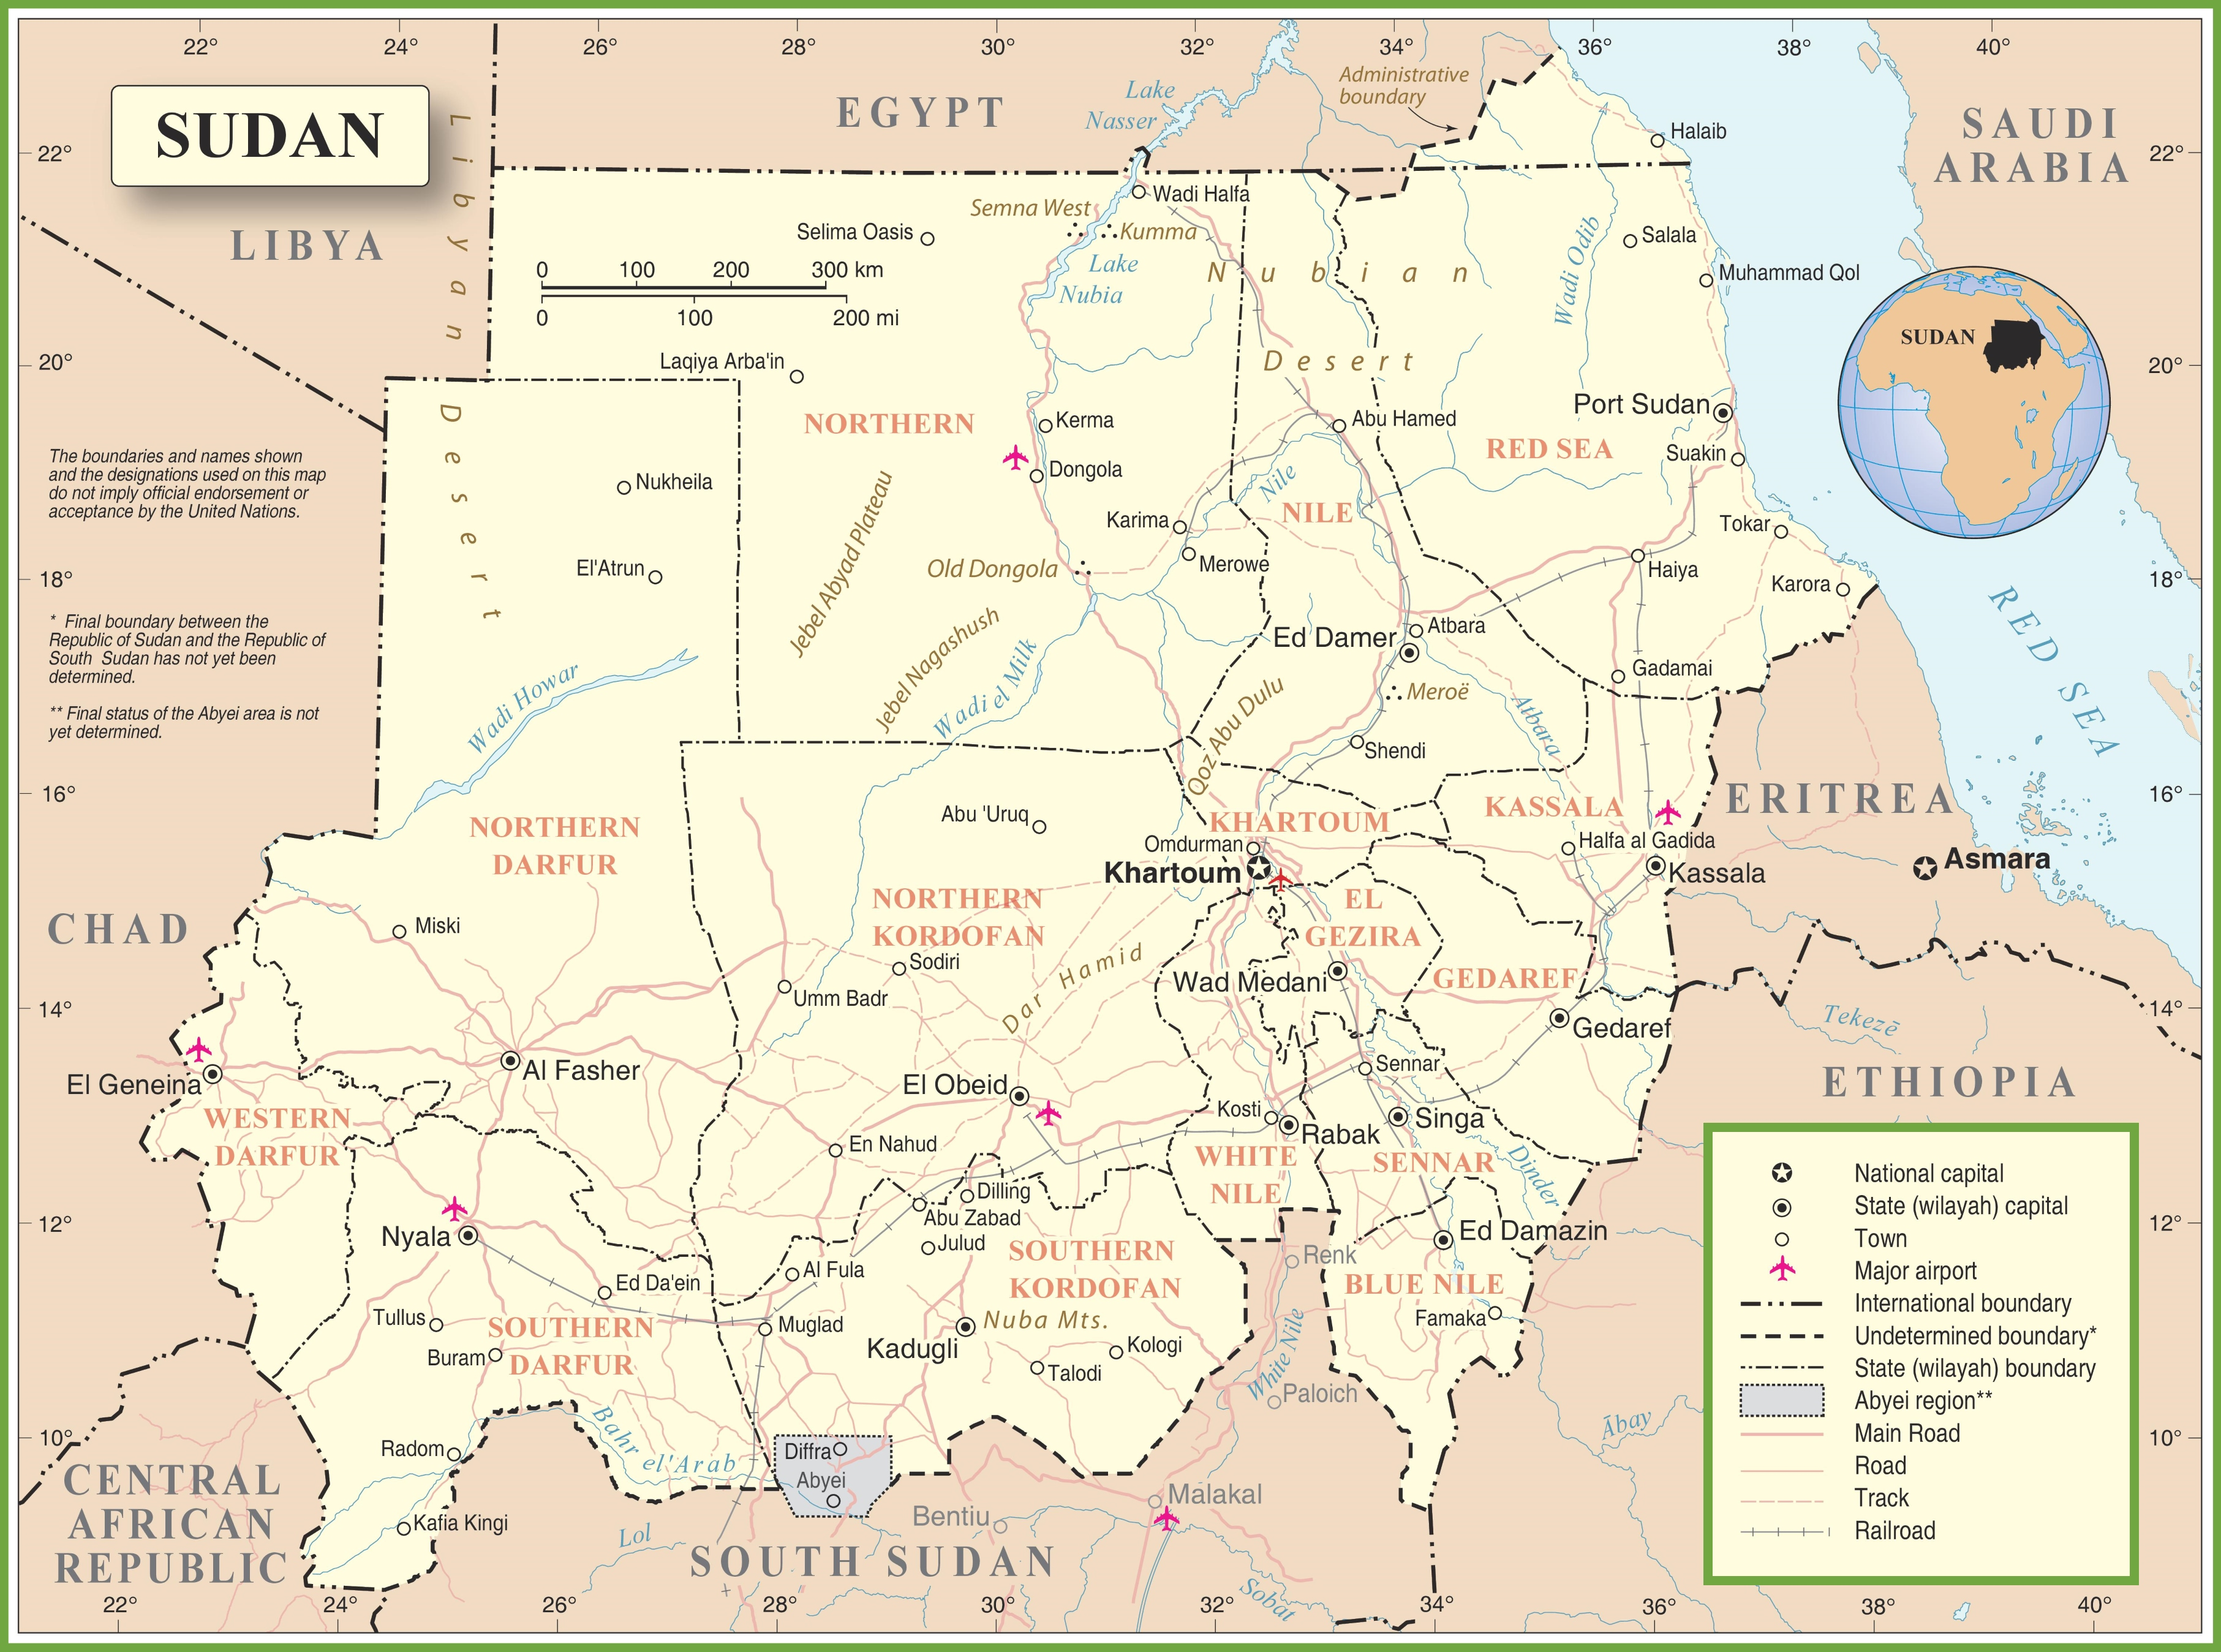 sudan-political-map United States America Map Capitals on united states map wall decal, united states and capitals map, united states classroom map, united states heart shape, united states map color, united states poster, united states history presidents, united states and their capitals, united states and its capitals, united states map 1871, map of america states and capitals, map of the united states capitals, united states growth map, united states map with capitals, united states 1791 map, united states city map usa, united states 50 states map with names, united states and caribbean map,